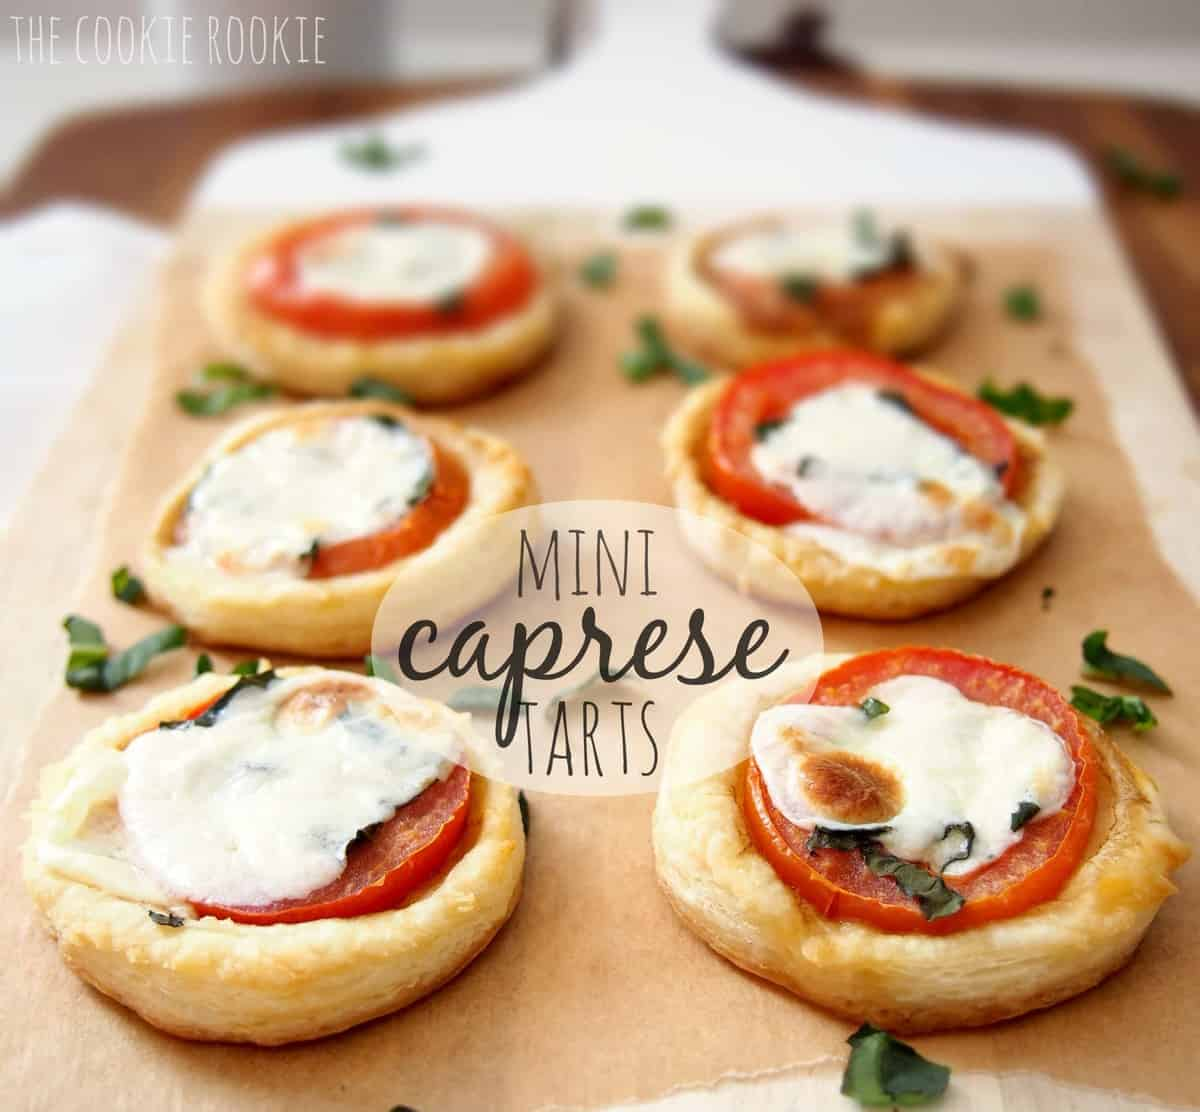 51 Best Trail Food And Cooking Ideas Images On Pinterest: The Cookie Rookie